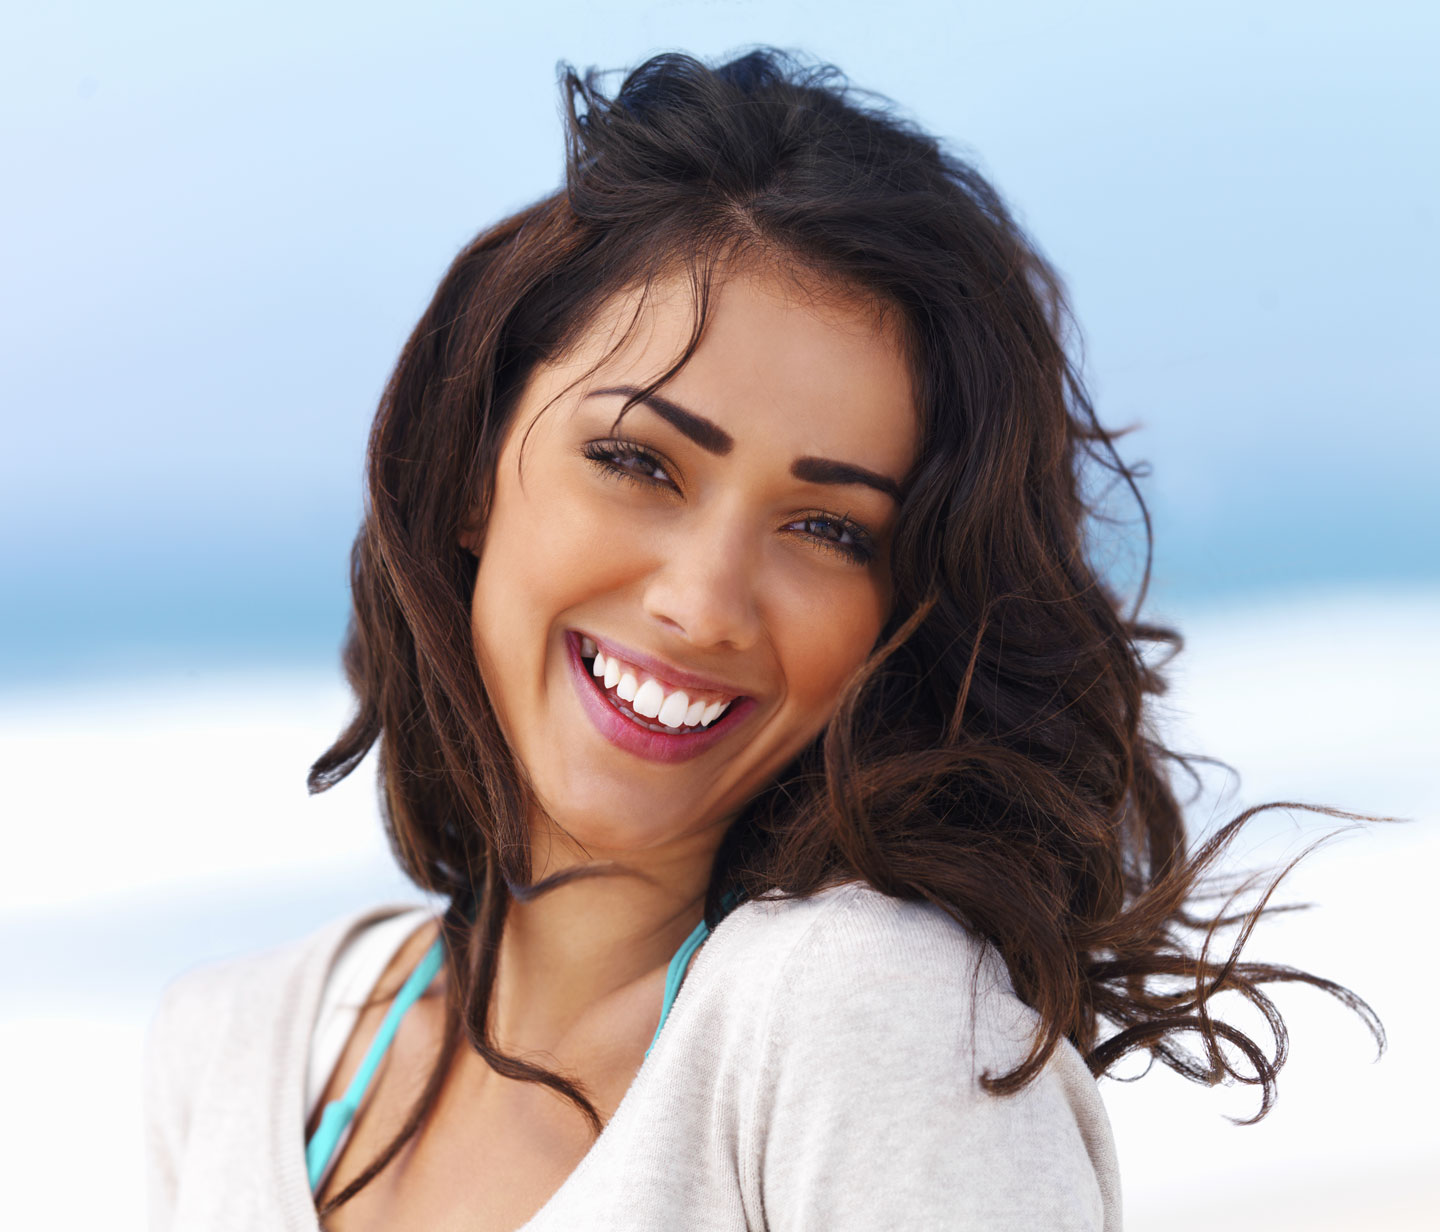 Rejuvenate Your Smile with Facial Injectables